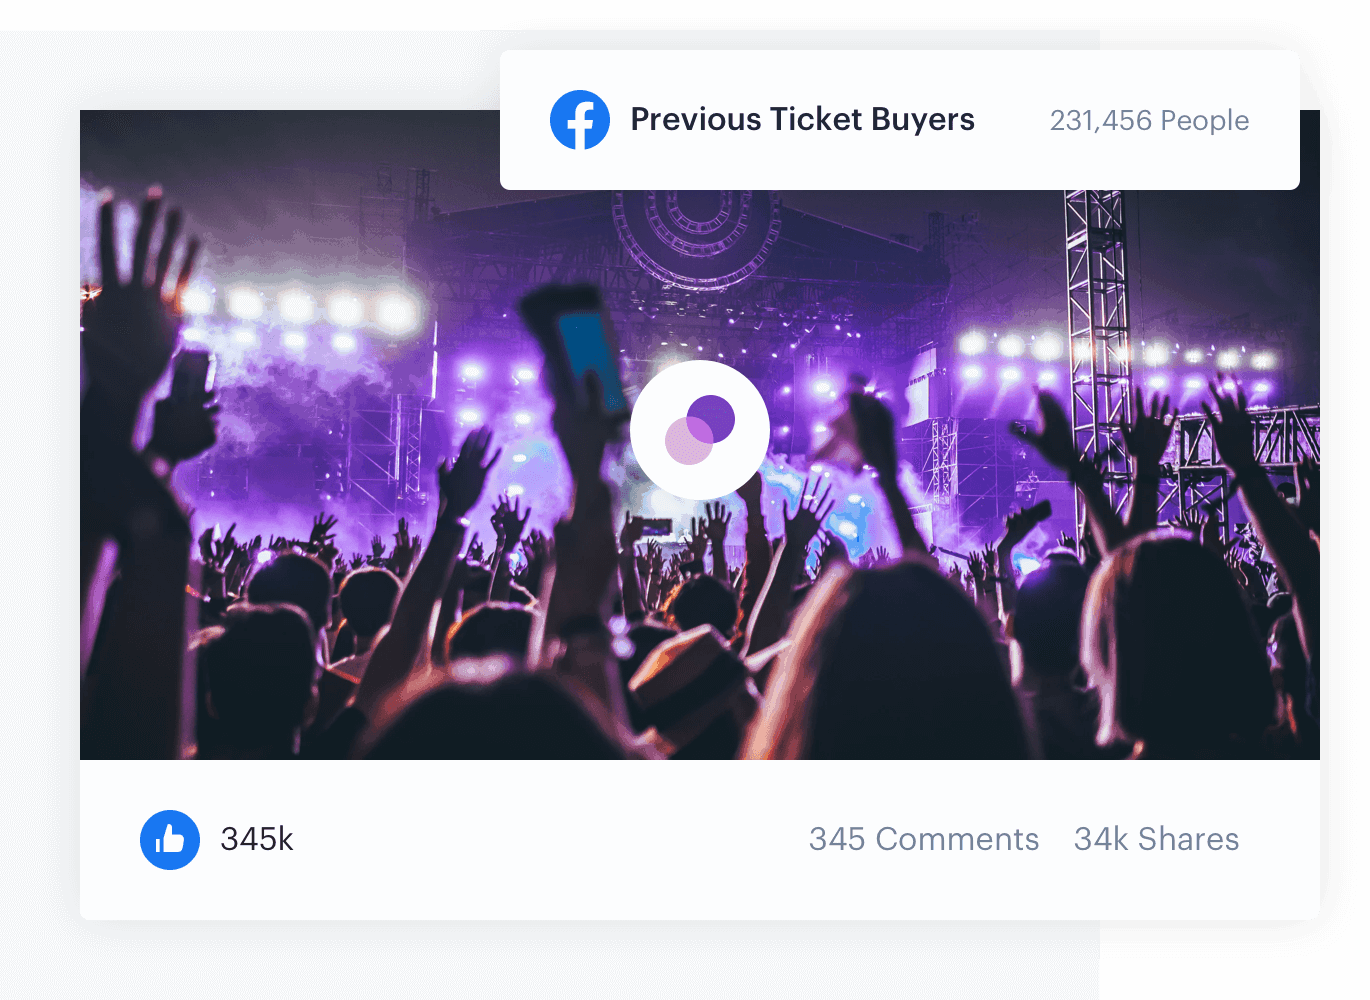 Automatically sync your contacts to Facebook Custom Audiences using Audience Republic